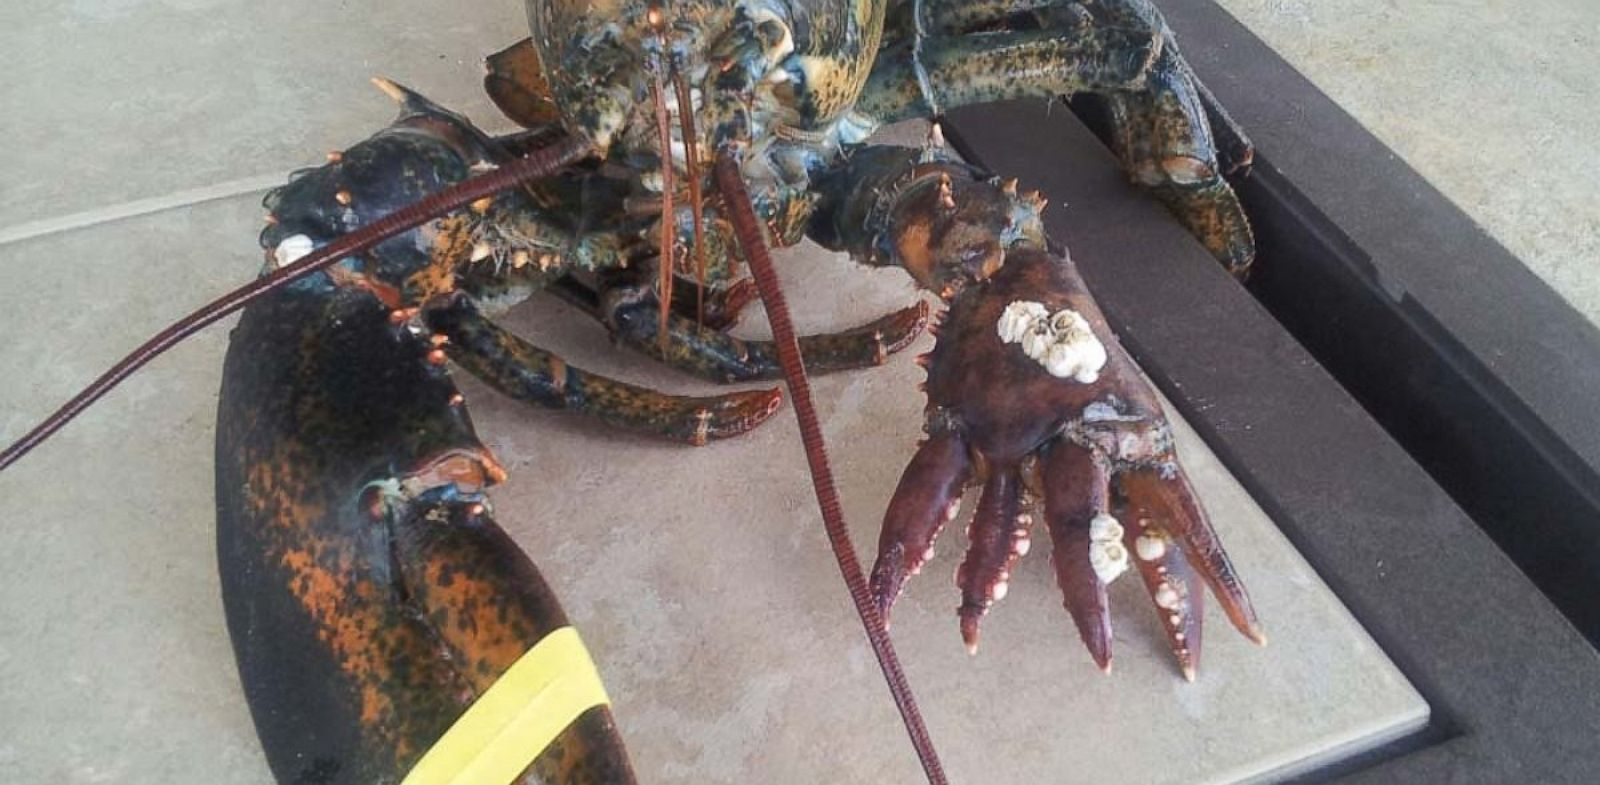 PHOTO: Lola, a six-clawed lobster, made her debut at the Maine State Aquarium in West Boothbay Harbor, Maine, after being donated by lobsterman Richard Figueiredo. The 4-lb. wonder sports a normal right claw, but has five smaller claws on the right.